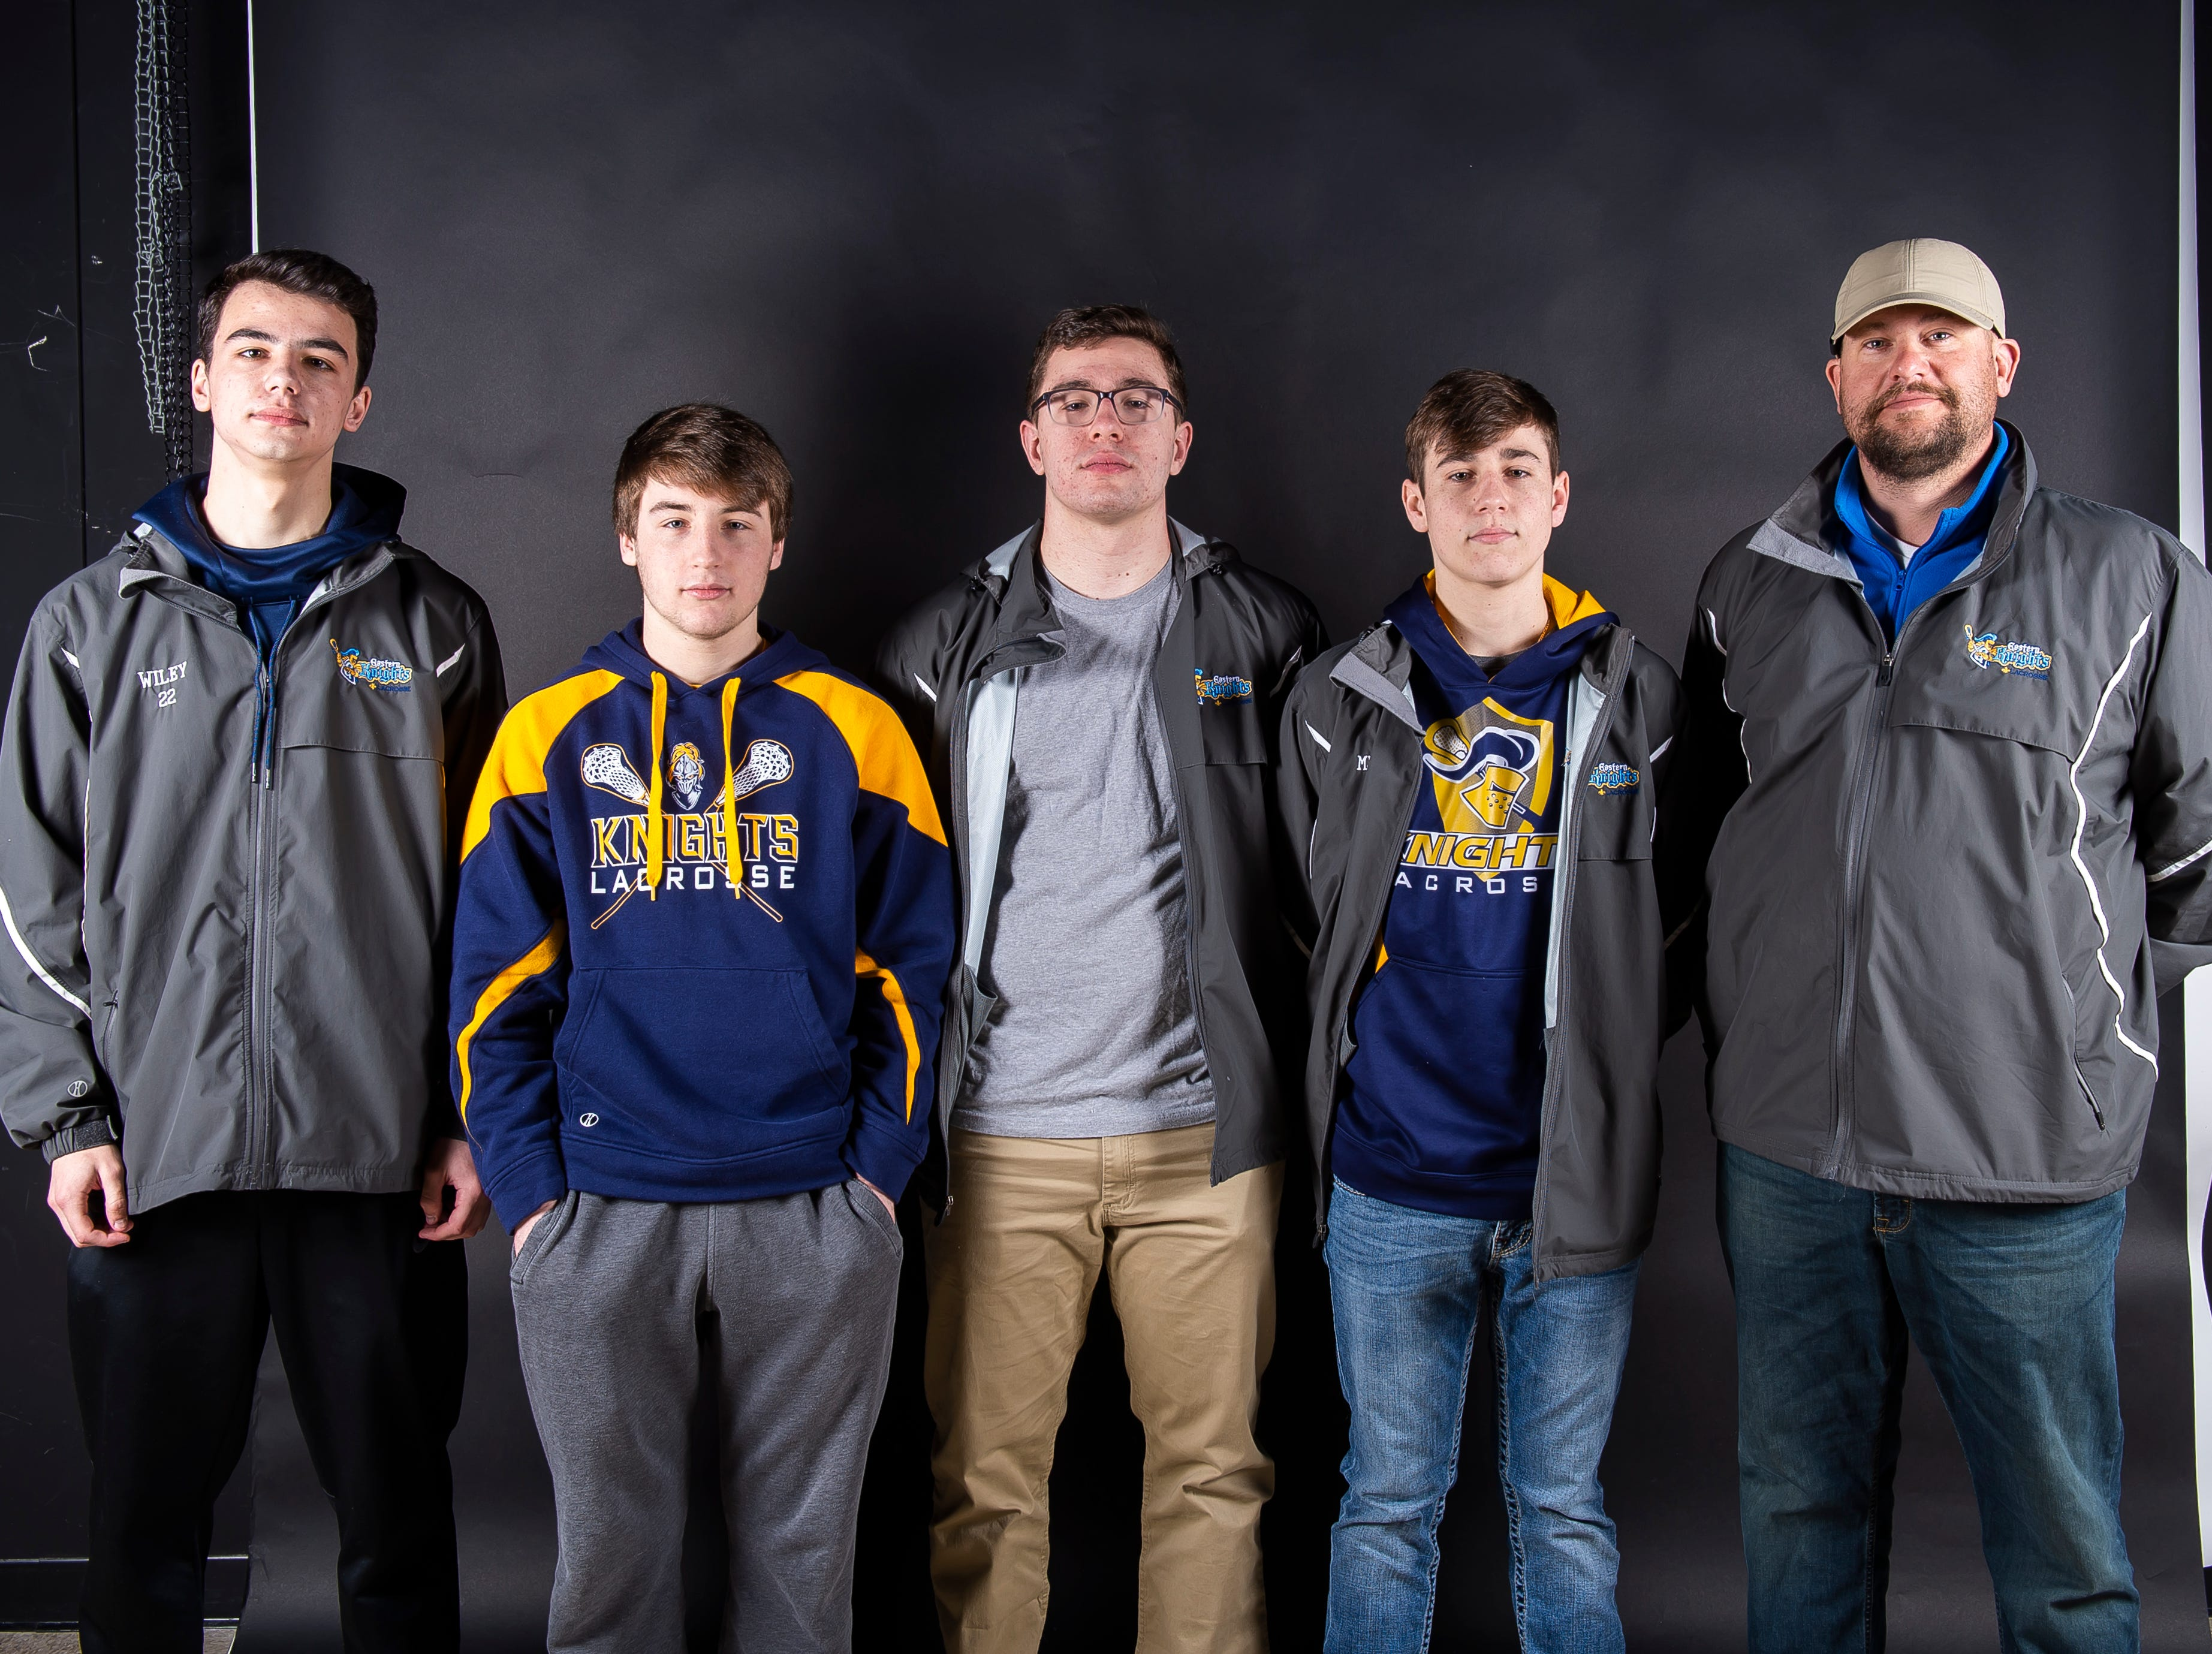 (From left) Eastern York lacrosse players Kade Wiley, Jake Crumling, Zach Grove and Cadeyn Micahel pose with coach Aaron Bankowski in the GameTimePA photo booth during spring sports media day in York Sunday, March 10, 2019.